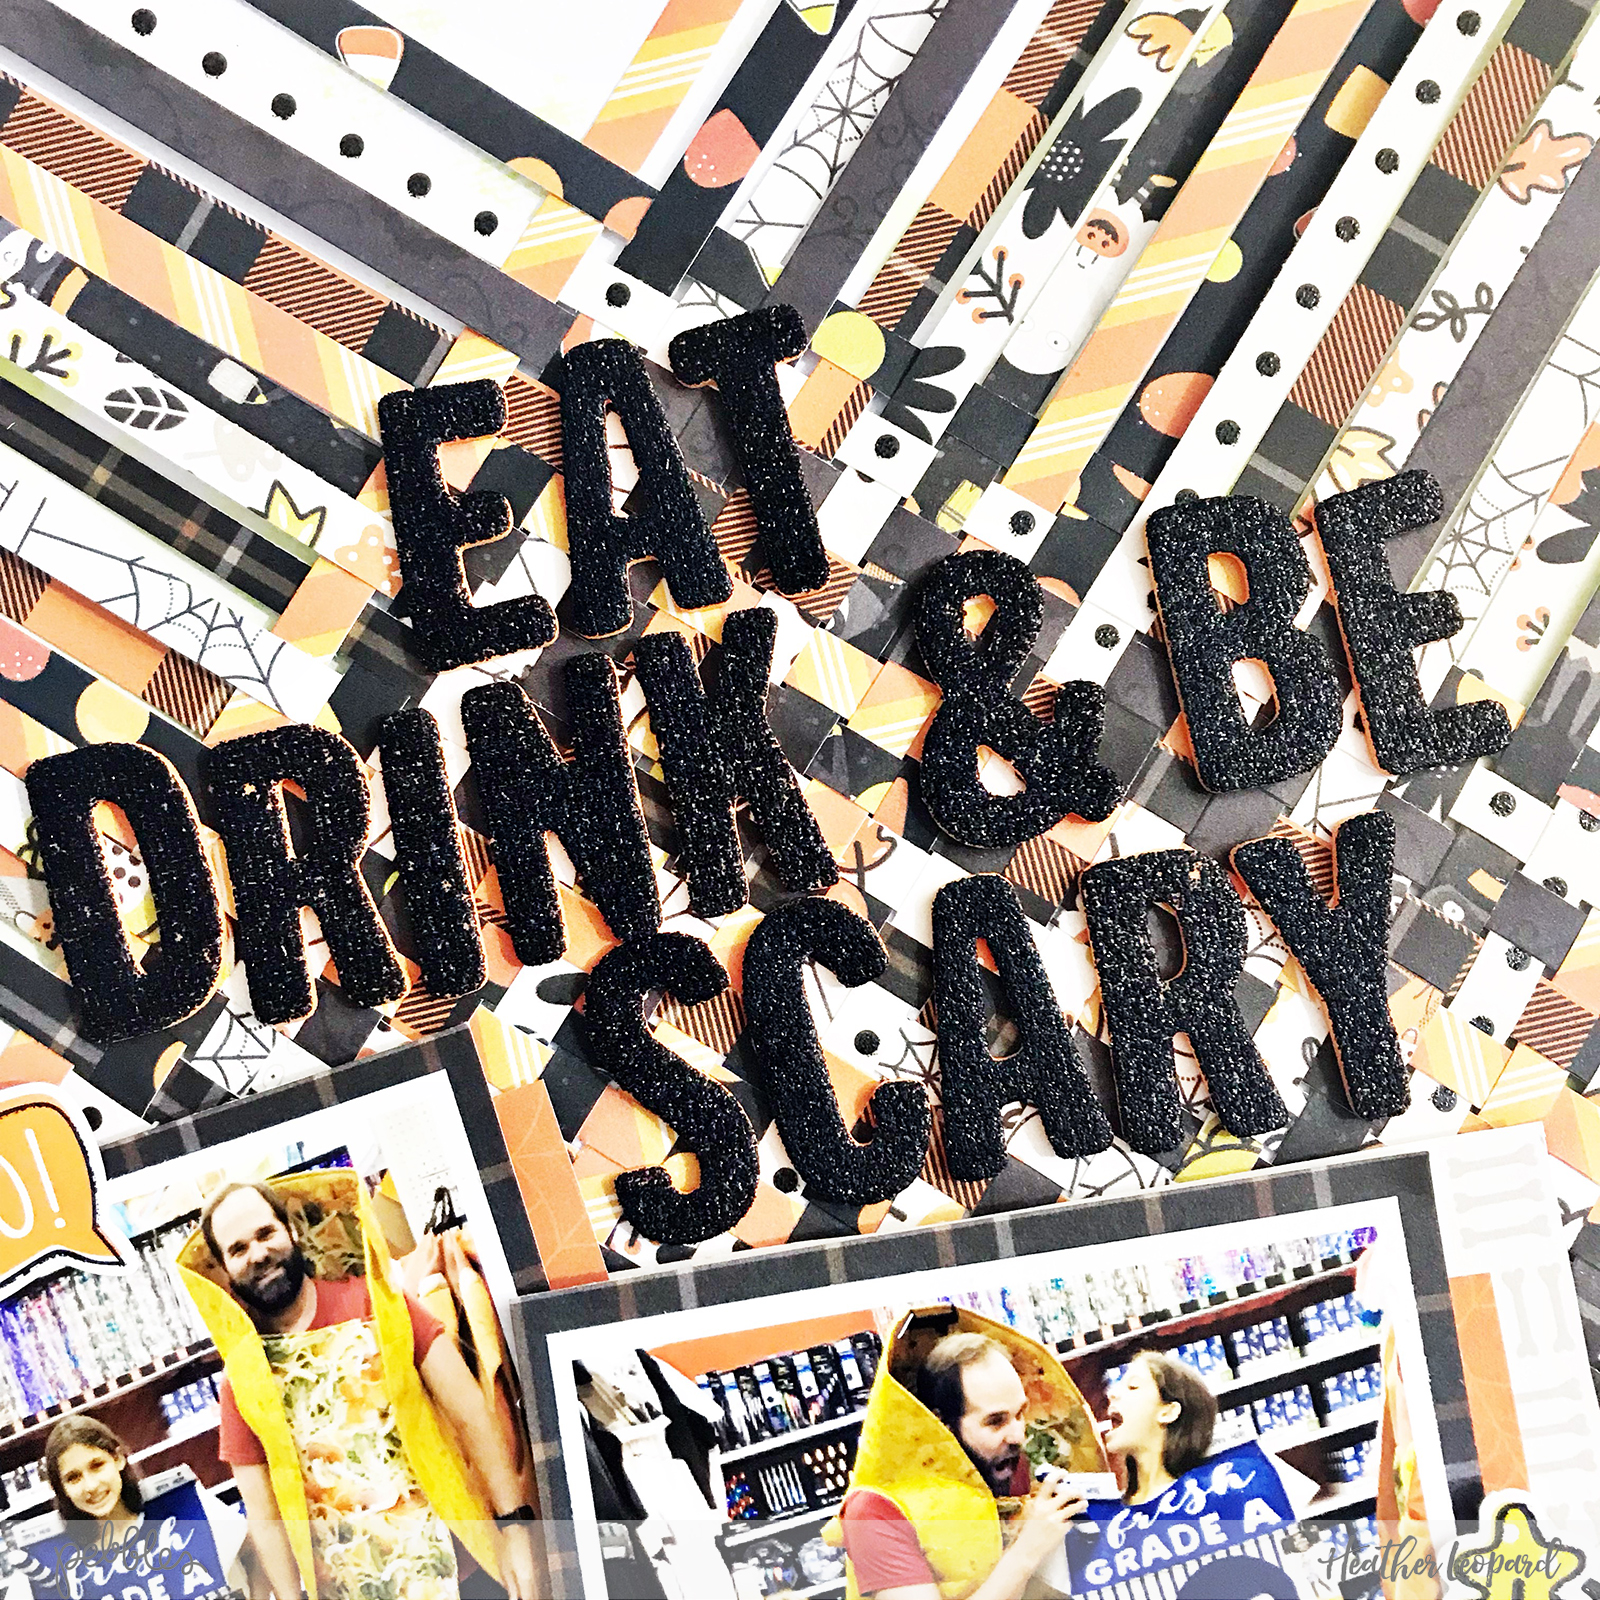 Eat, Drink & Be Scary Halloween Scrapbooking Layout by @heatherleopard using @pebblesinc #spookyboo collection #scrapbooking #scrapbook #halloween #boo